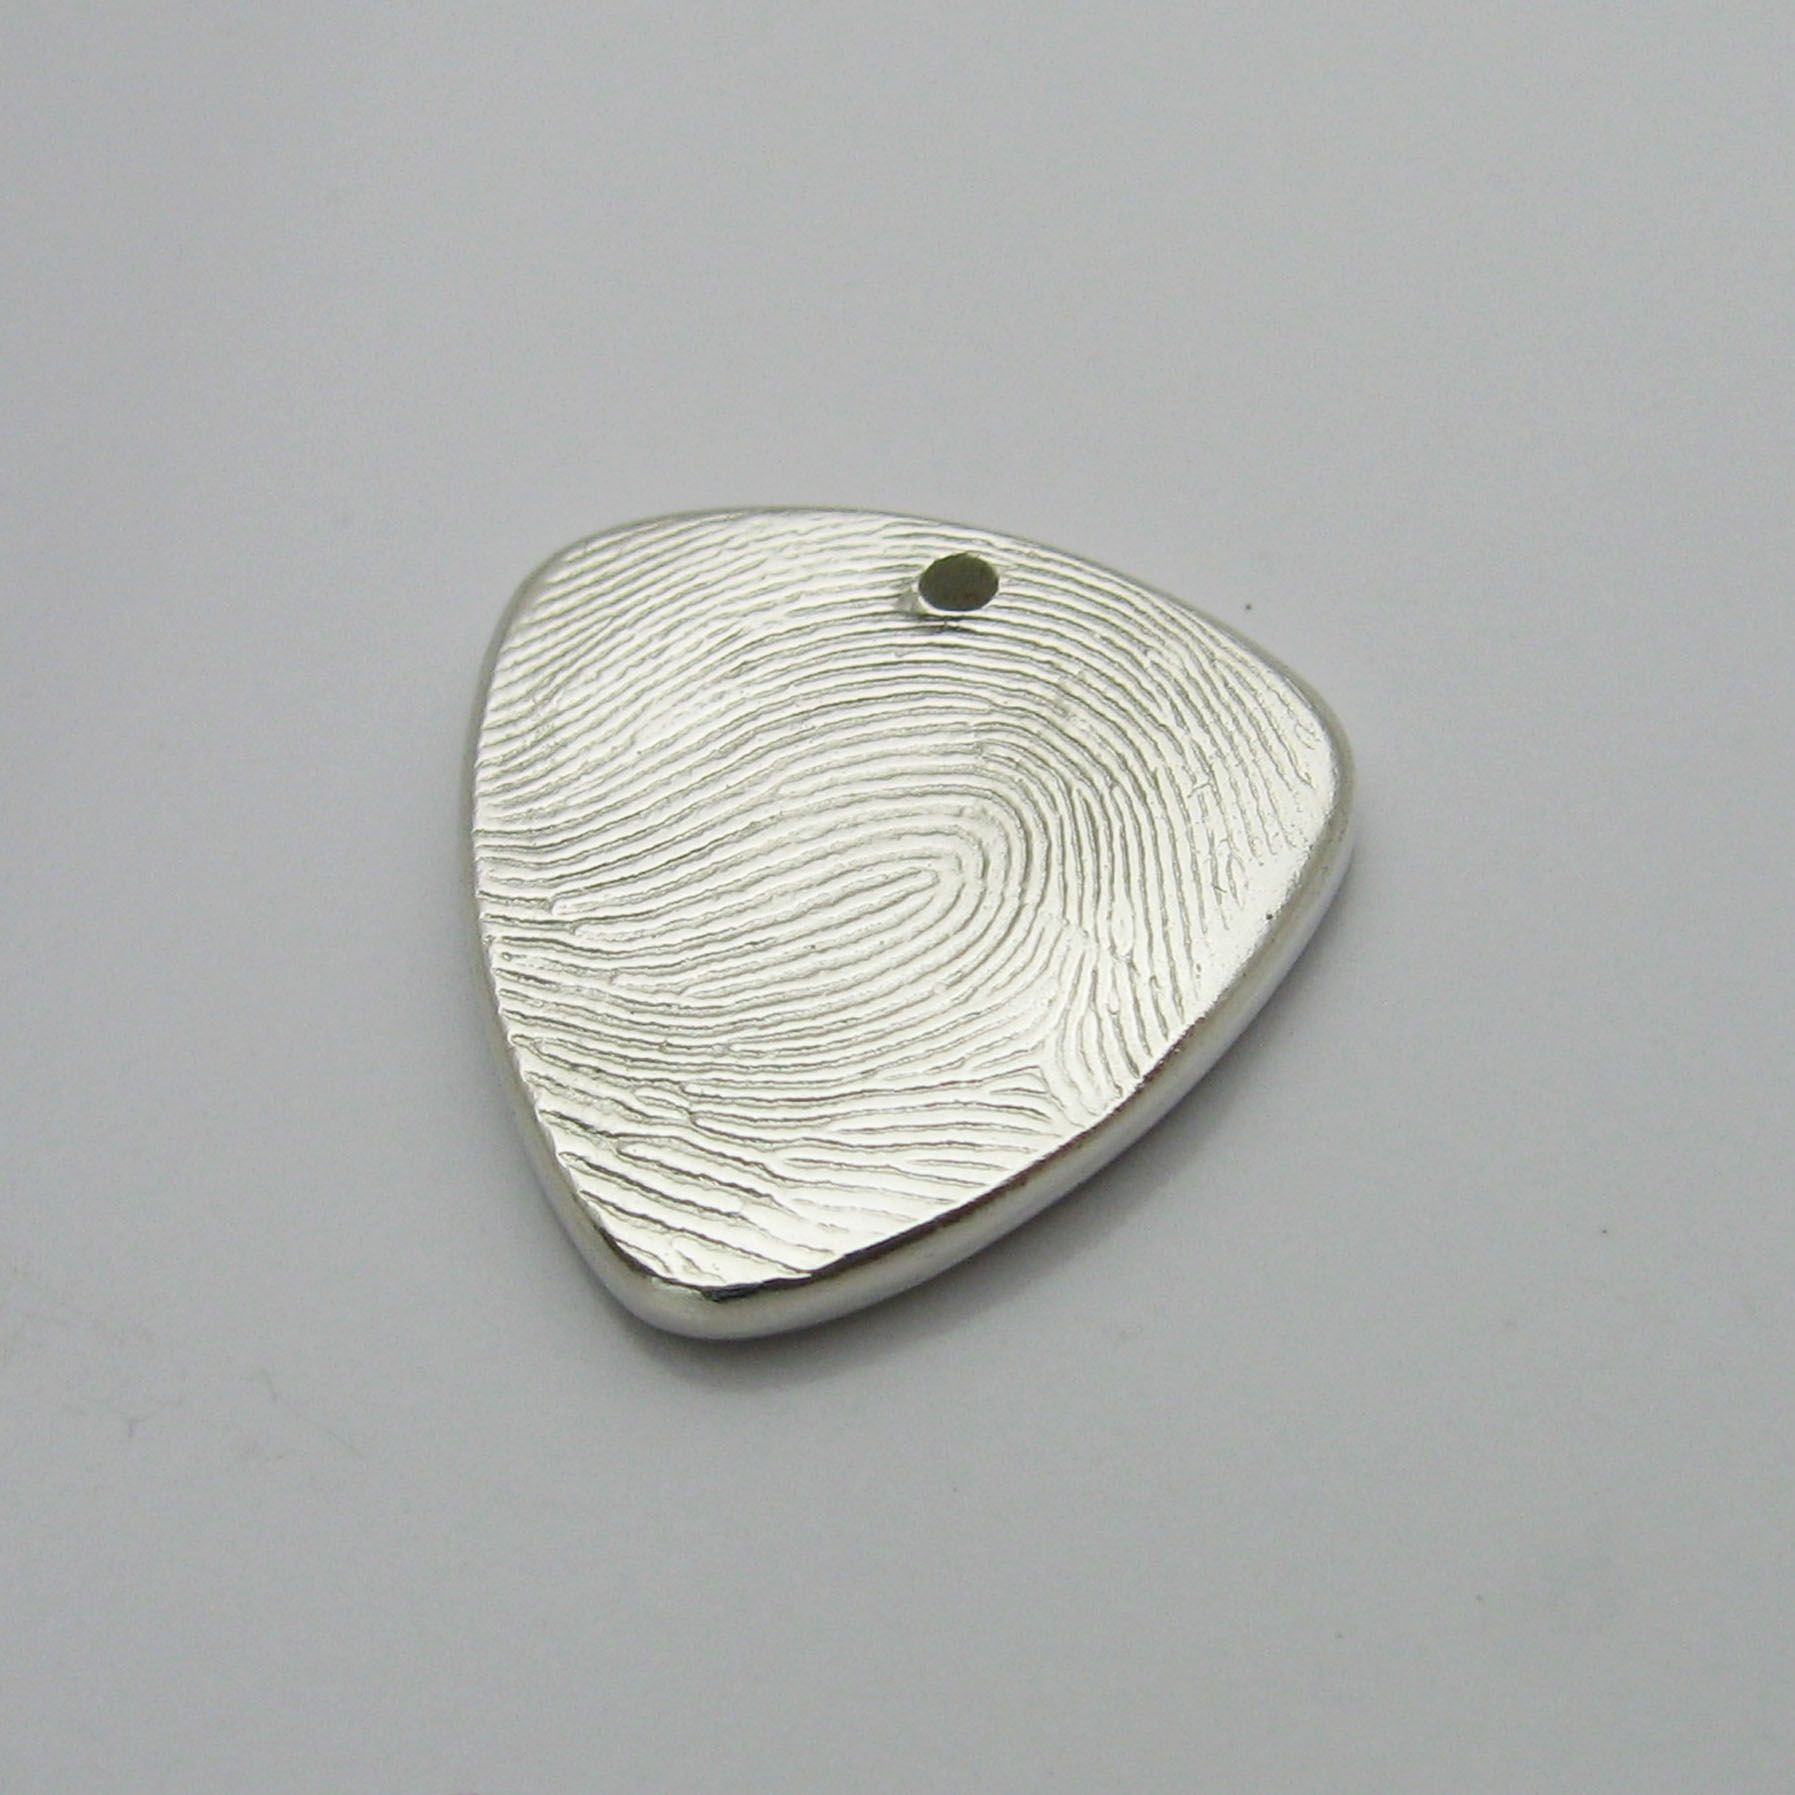 Buy a hand crafted personalized silver fingerprint guitar for Fingerprint jewelry by first impressions